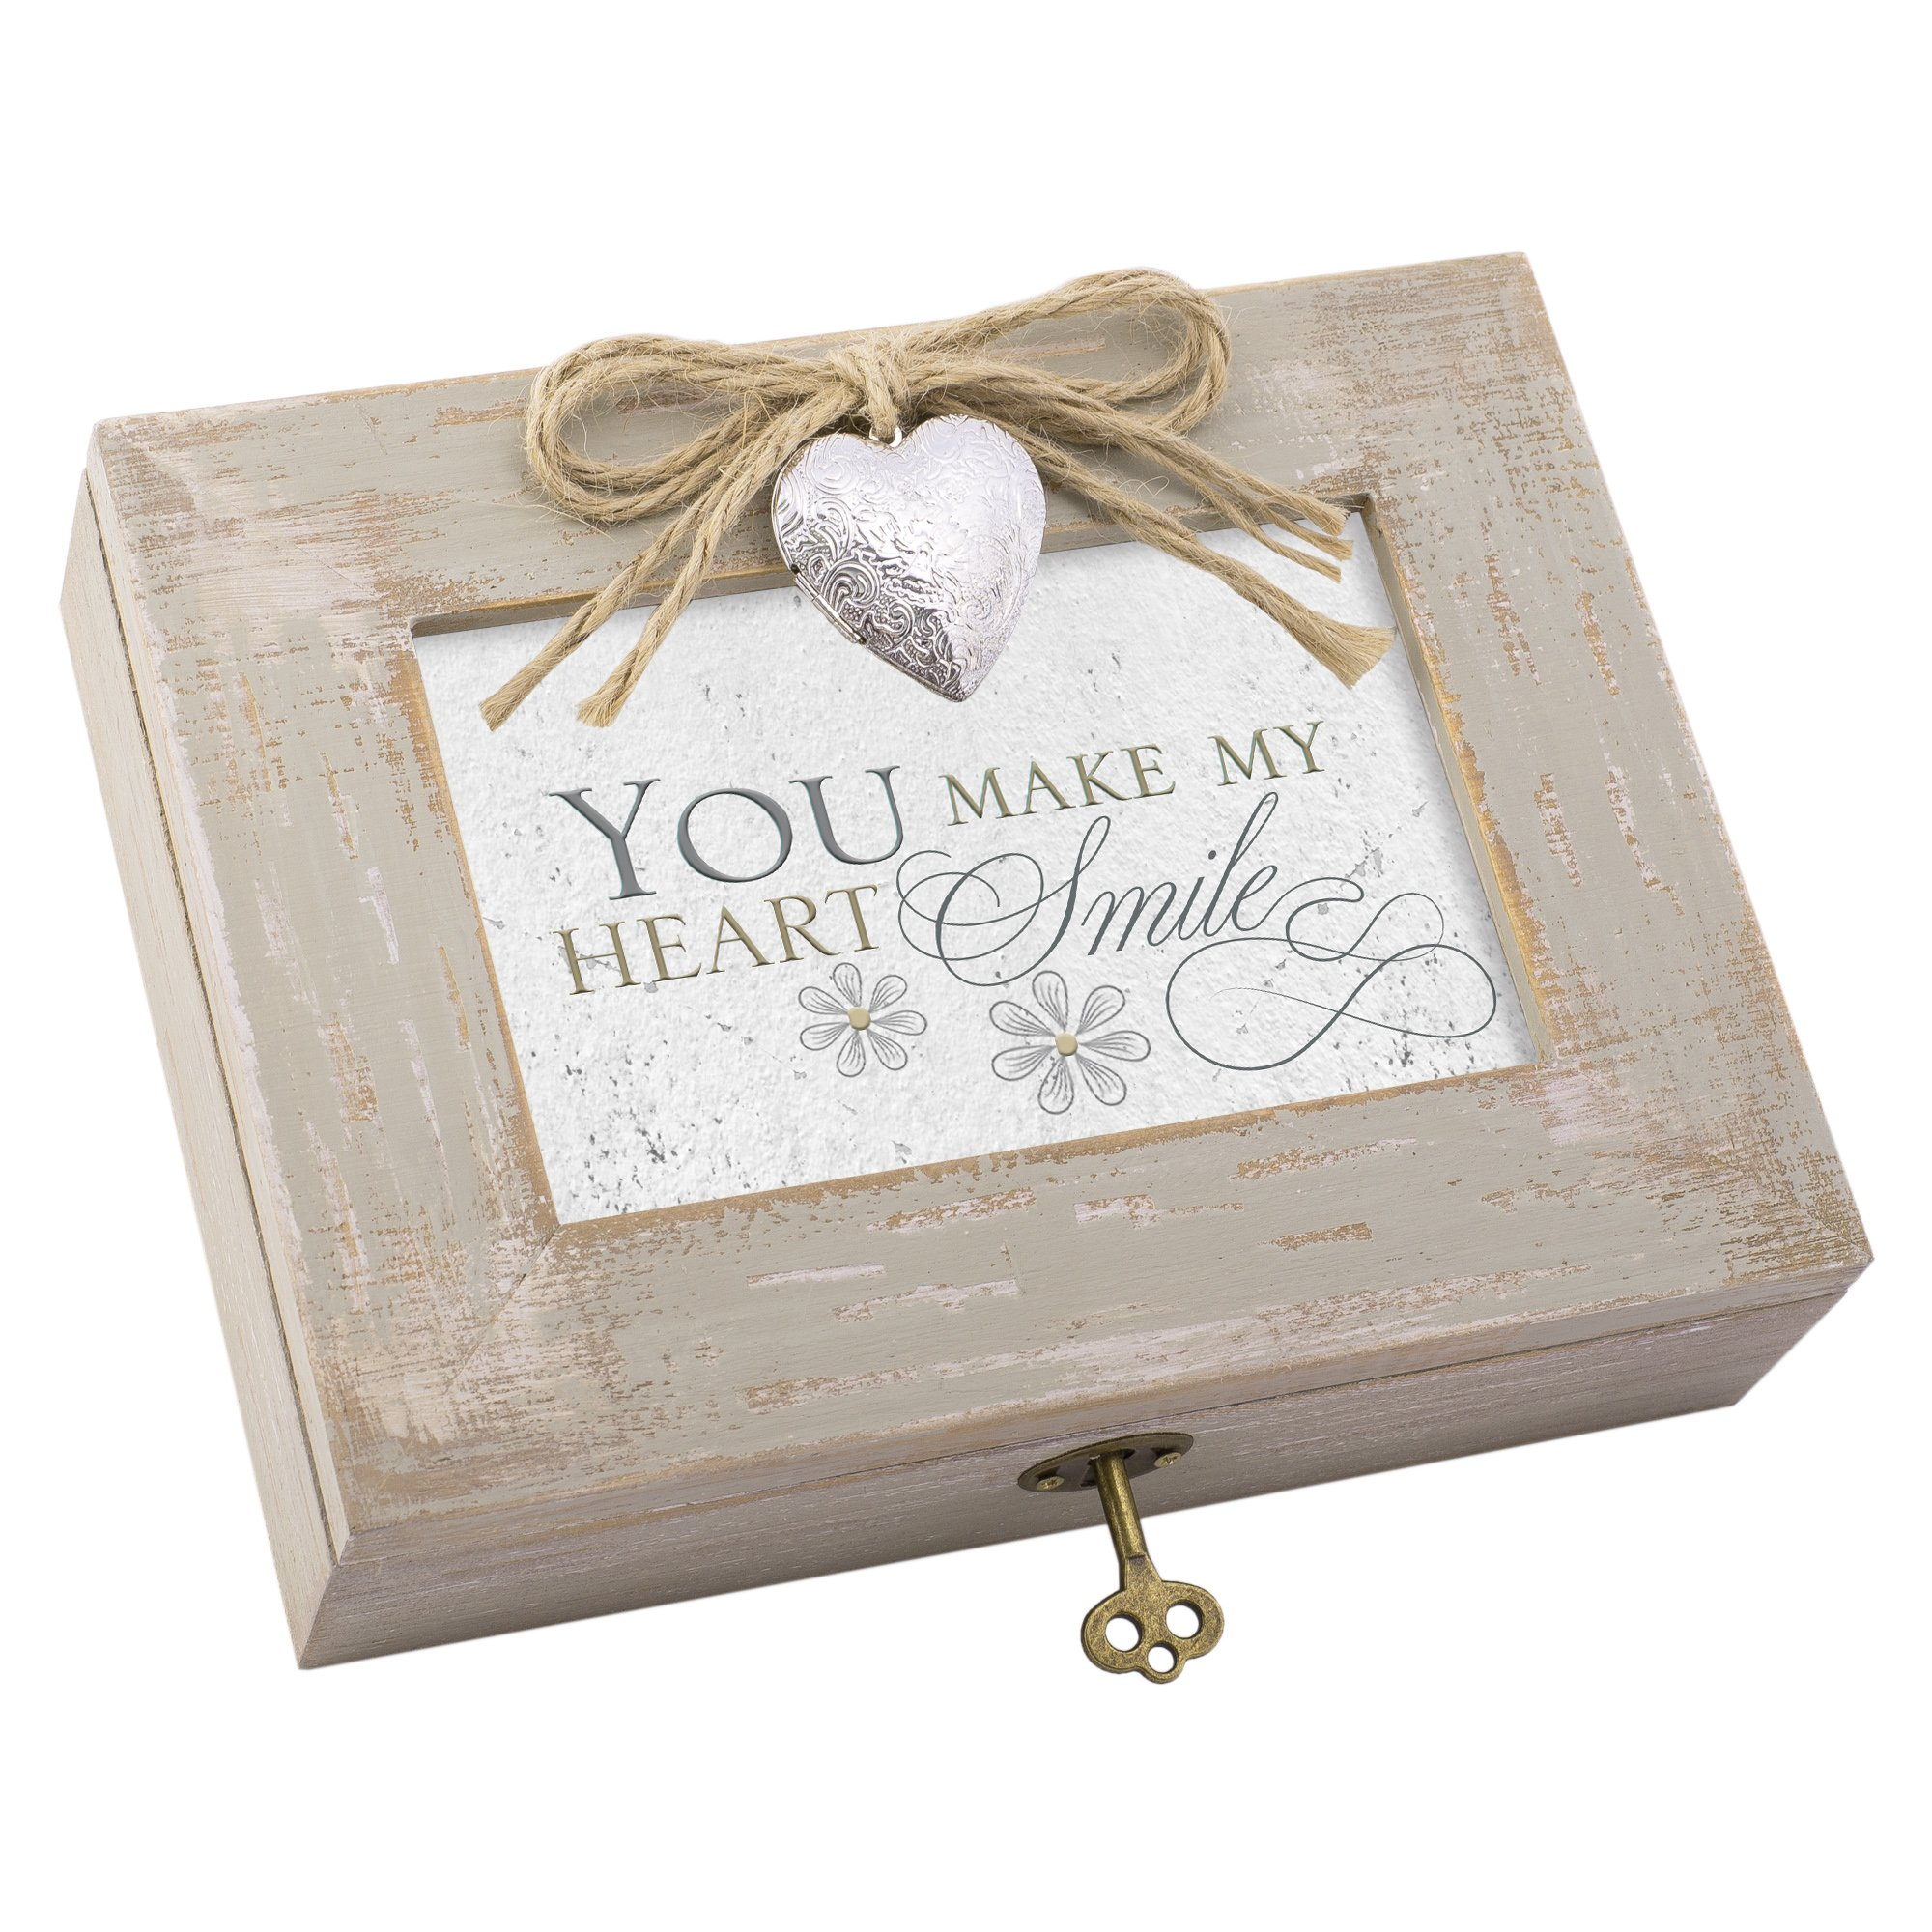 Cottage Garden You Make My Heart Smile Distressed Wood Locket Jewelry Music Box Plays Tune You Light Up My Life by Cottage Garden (Image #1)